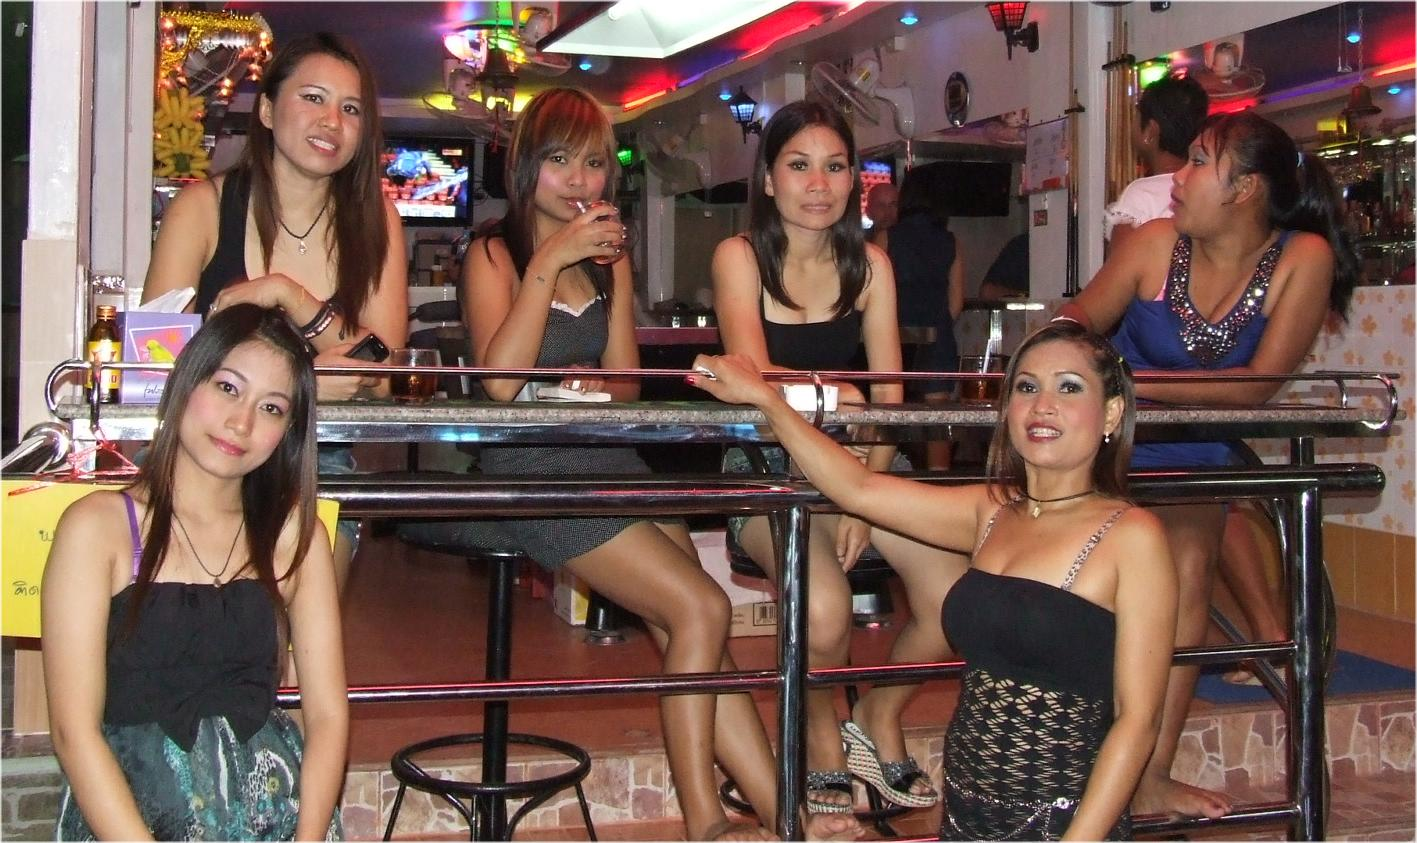 titty bangkok ladyboy escort agency